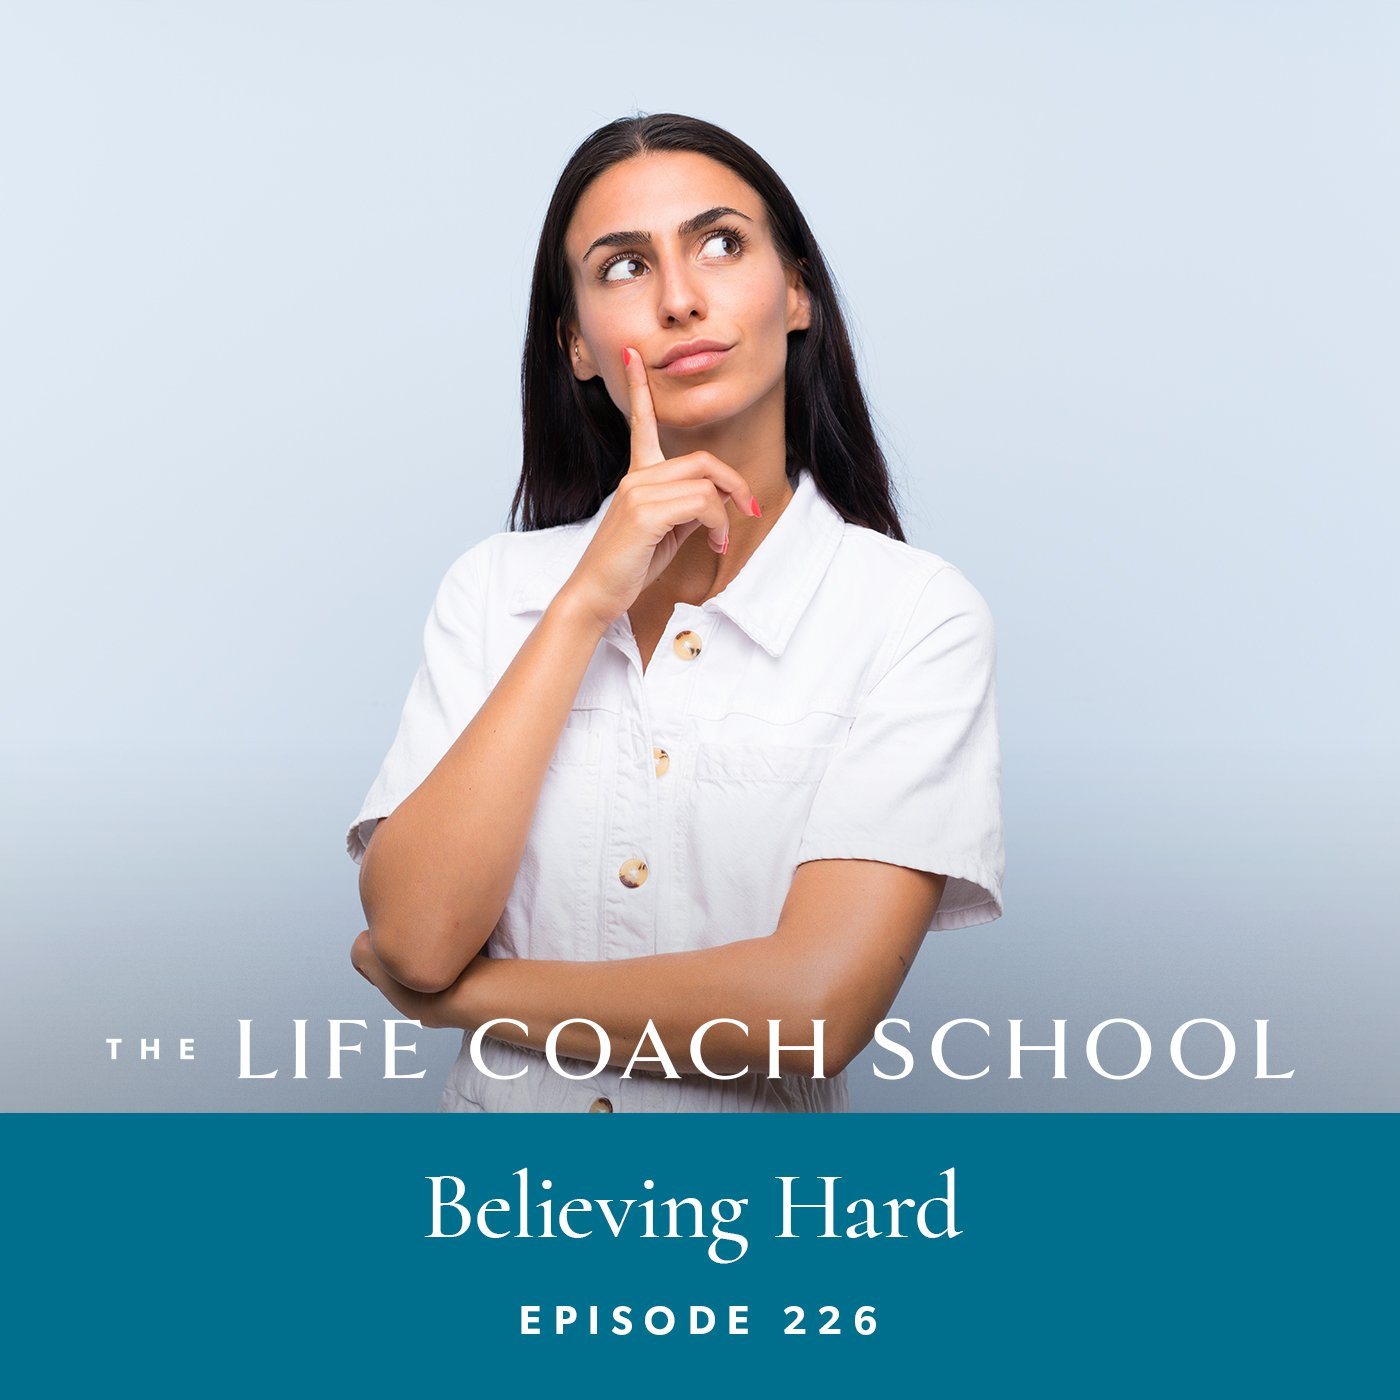 The Life Coach School Podcast with Brooke Castillo | Episode 226 | Believing Hard